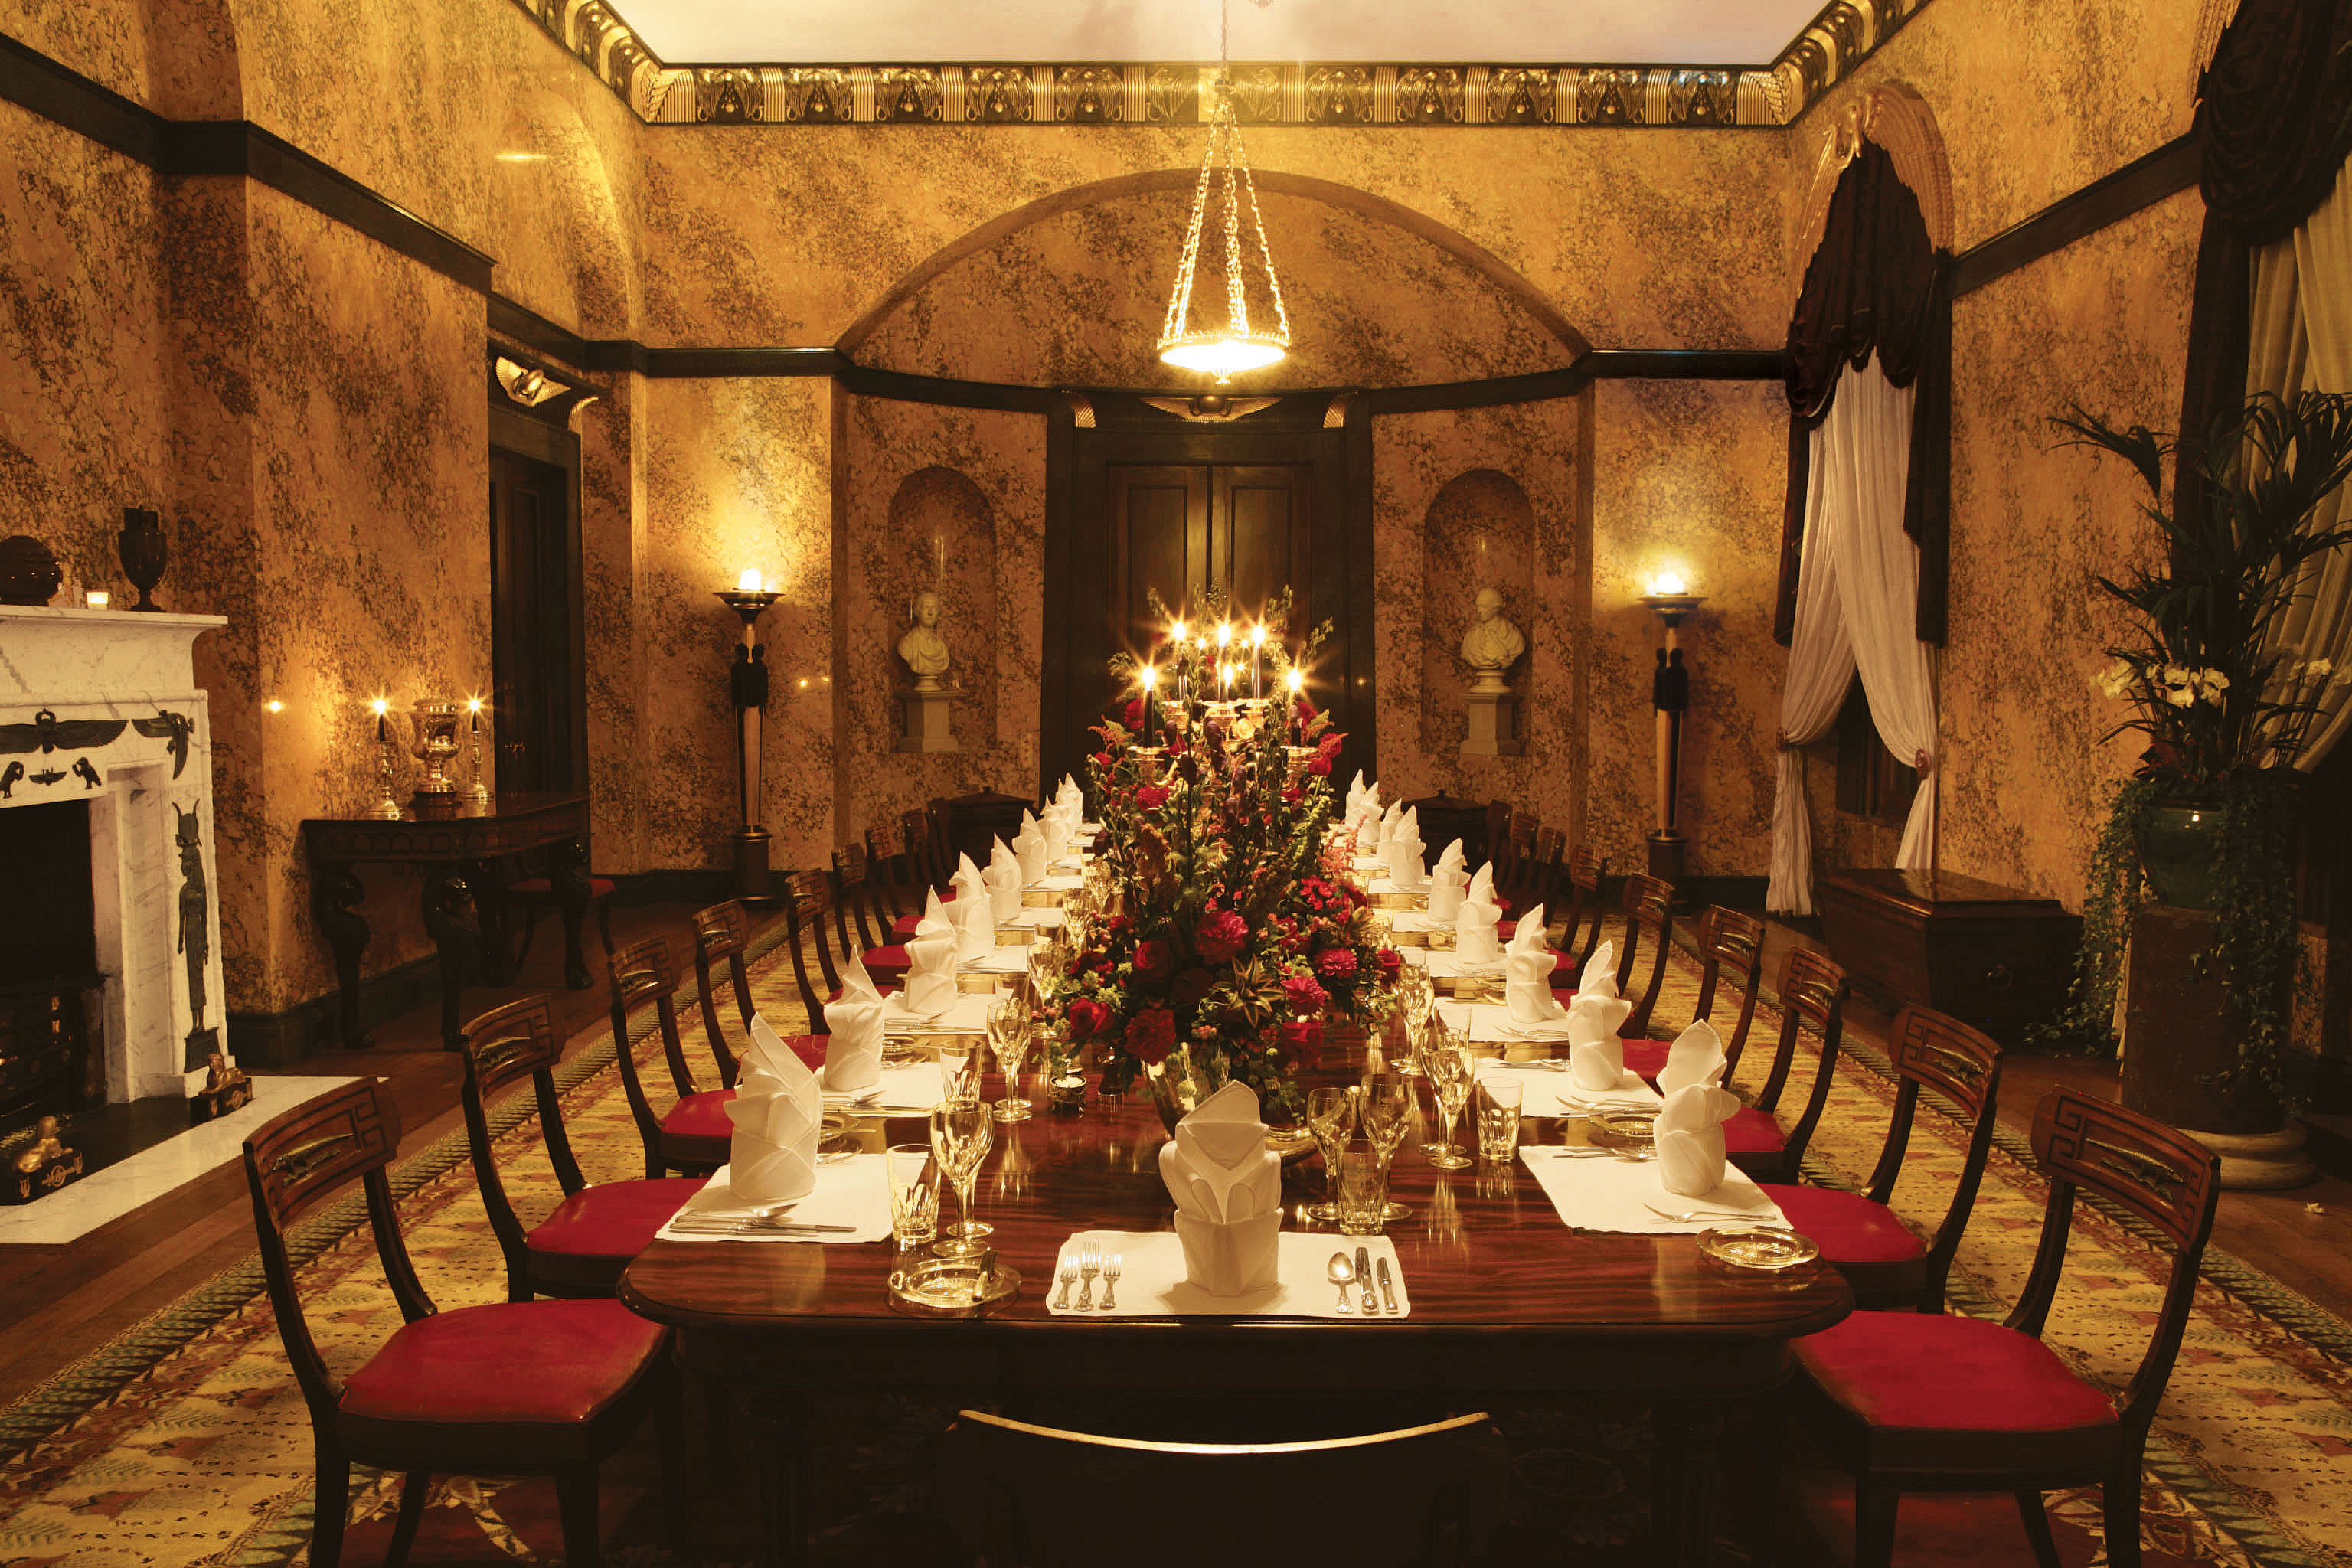 Egyptiandiningroomcreditcliveboursnell Jpeg Image 3072 Awesome Castle Dining Room Inspiration Design